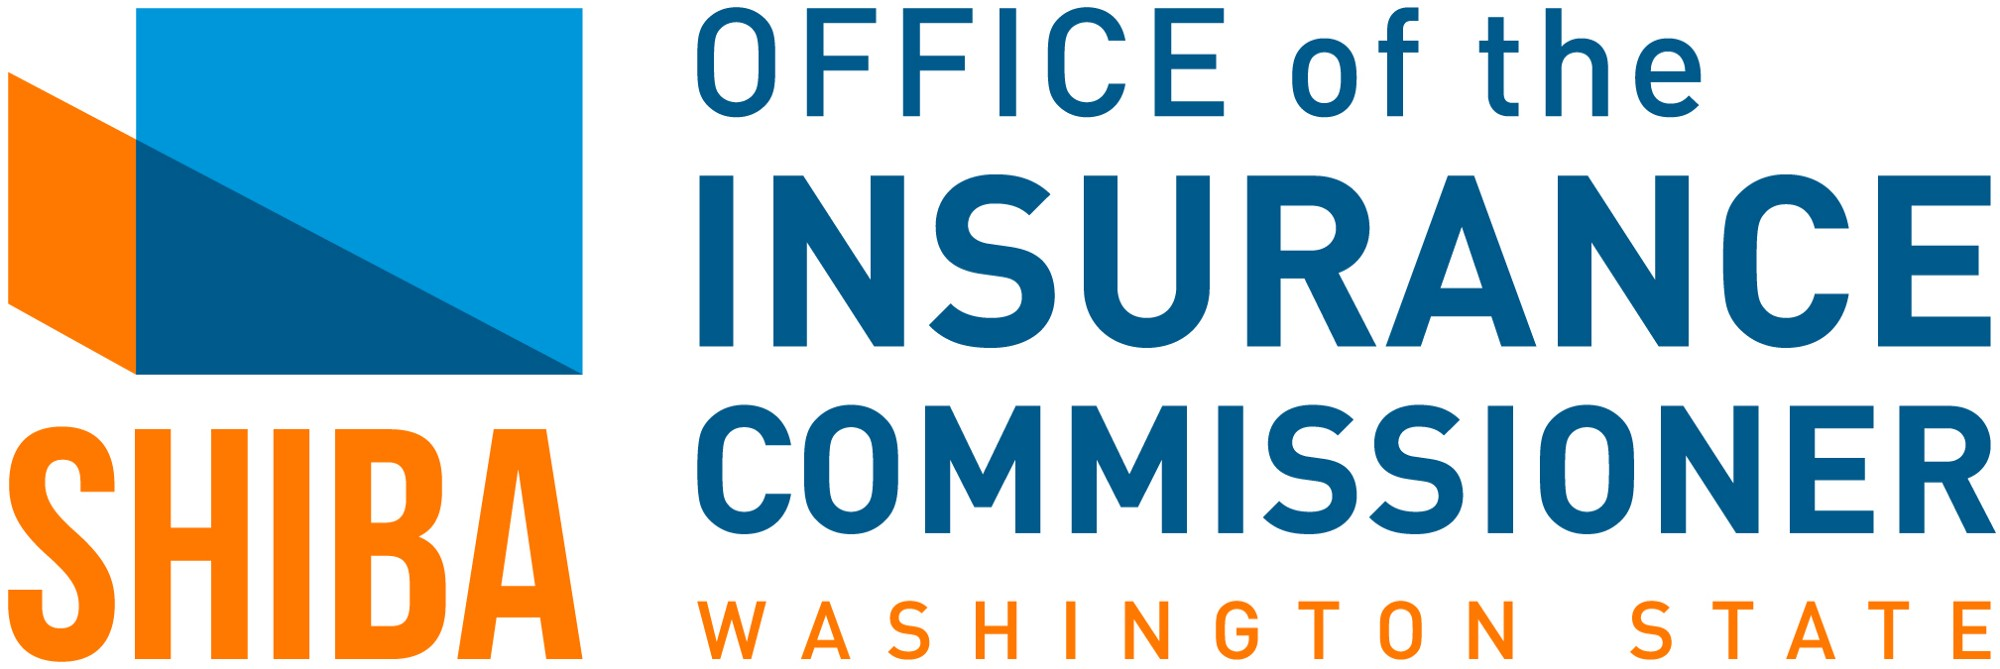 Statewide Health Insurance Benefits Advisors logo from the Office of the Insurance Commissioner